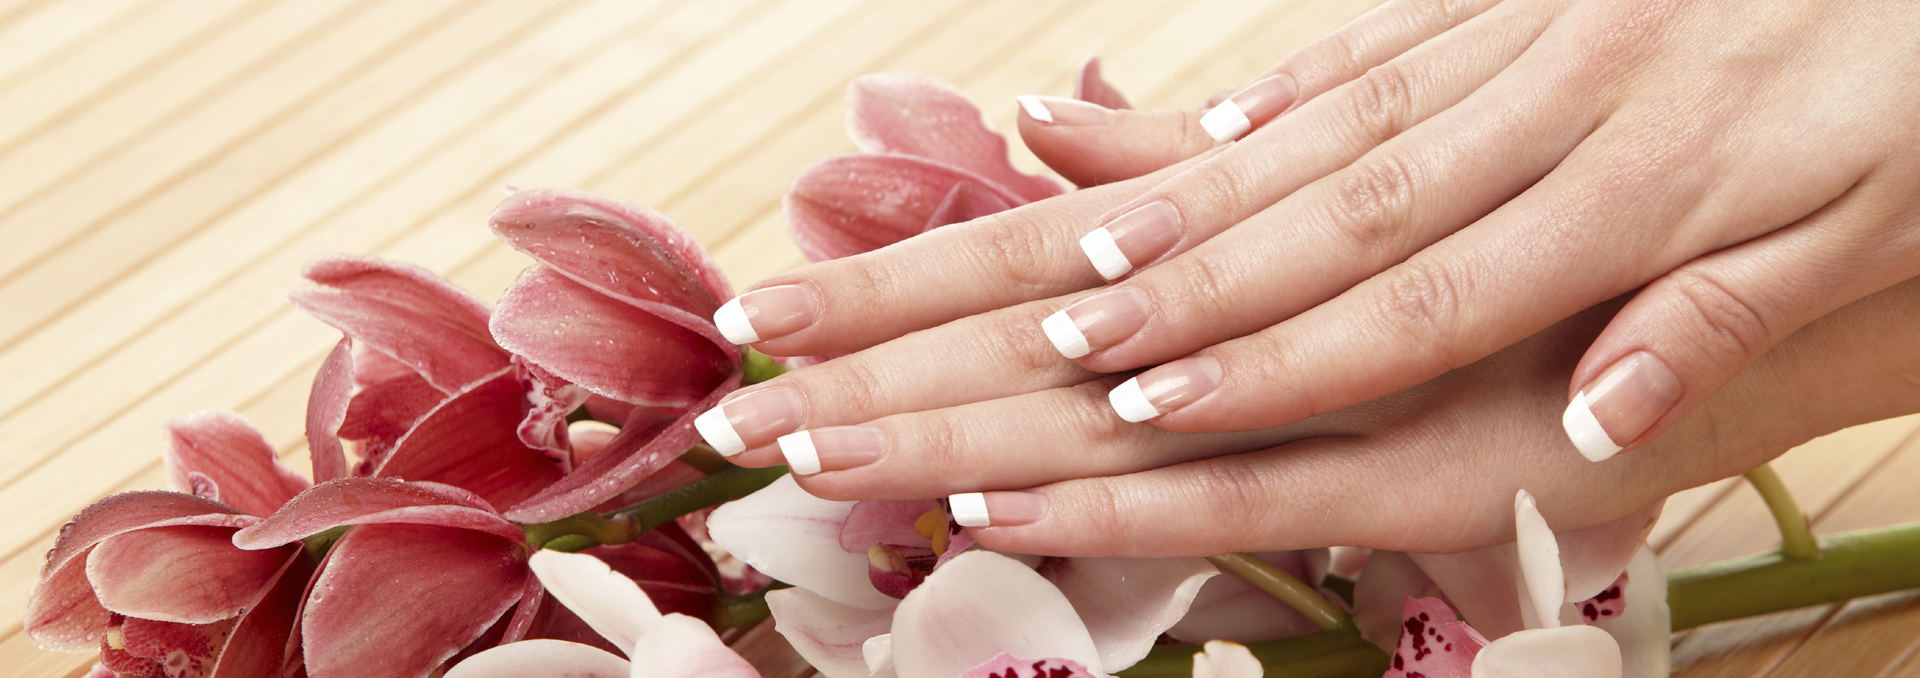 Nails - Nail salon in Boulder, CO 80301